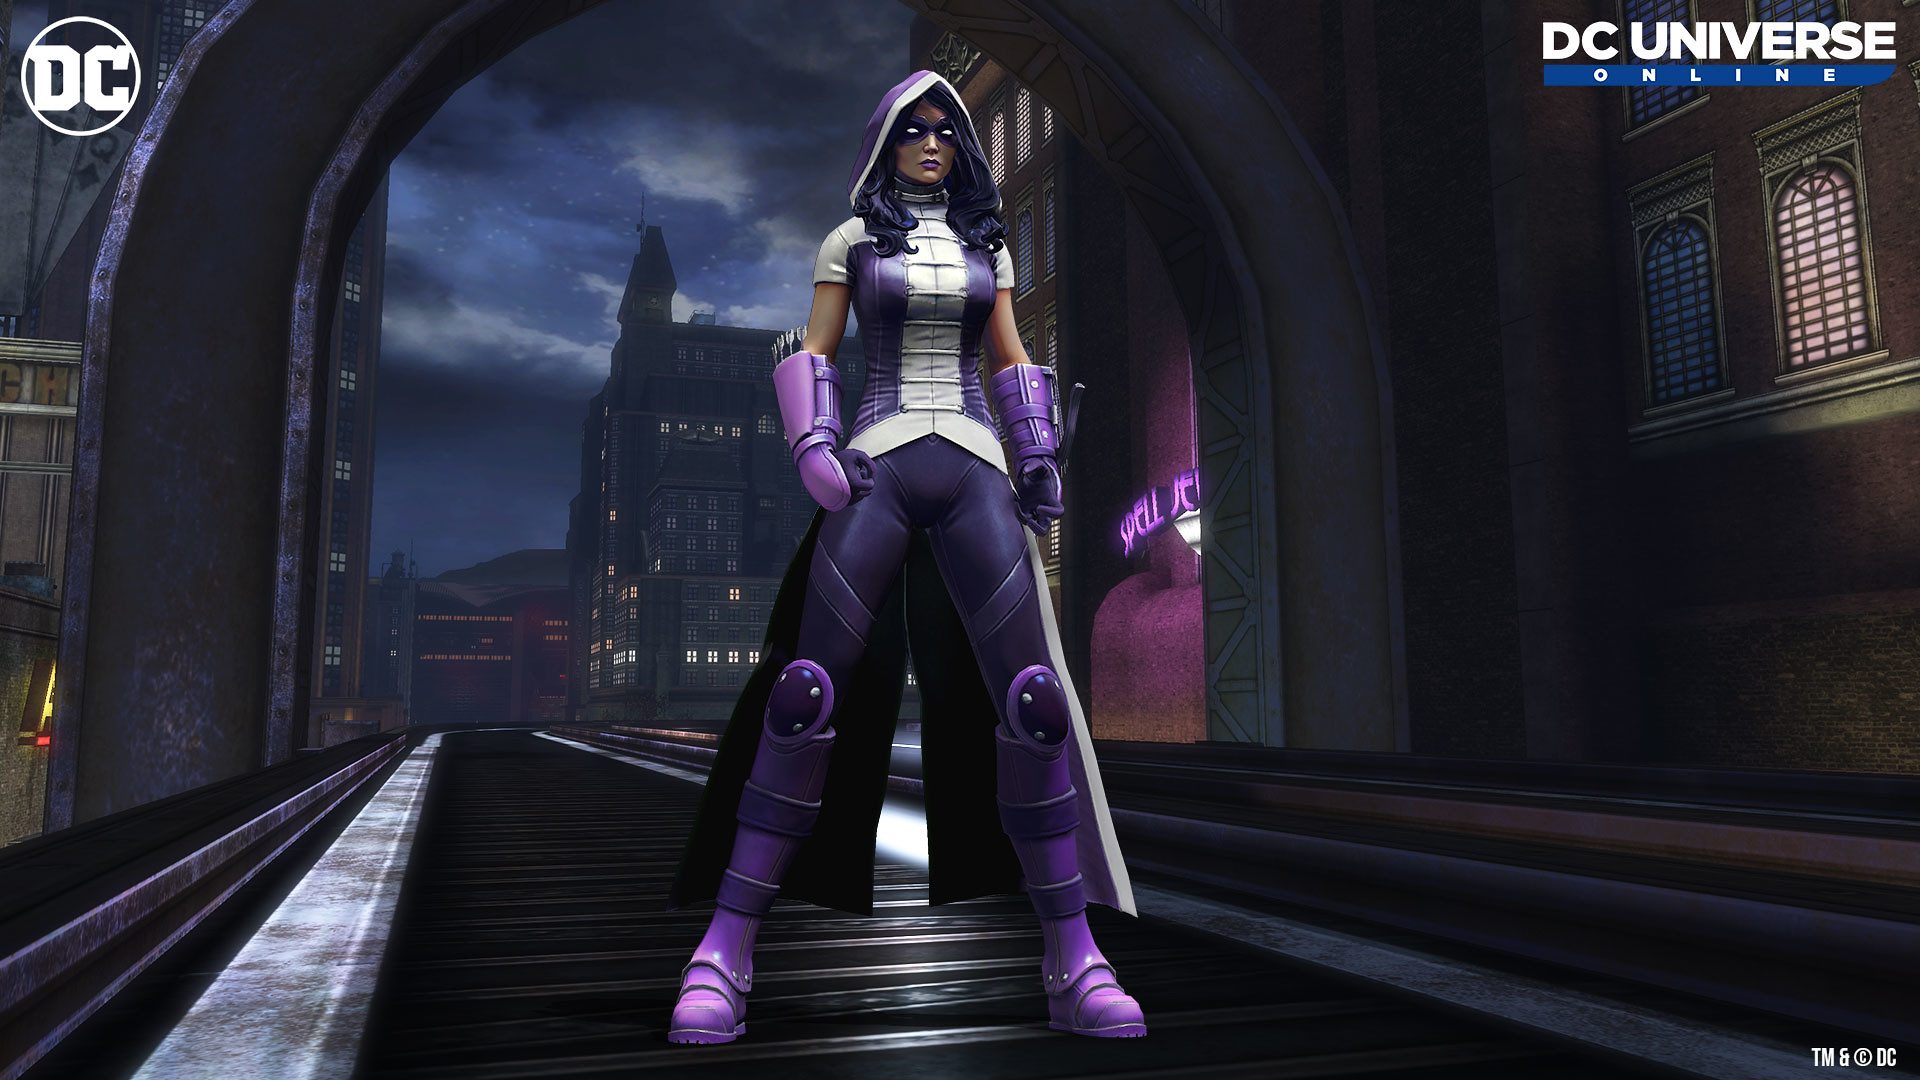 DC Universe Online: Birds of Prey - The Huntress on PS4